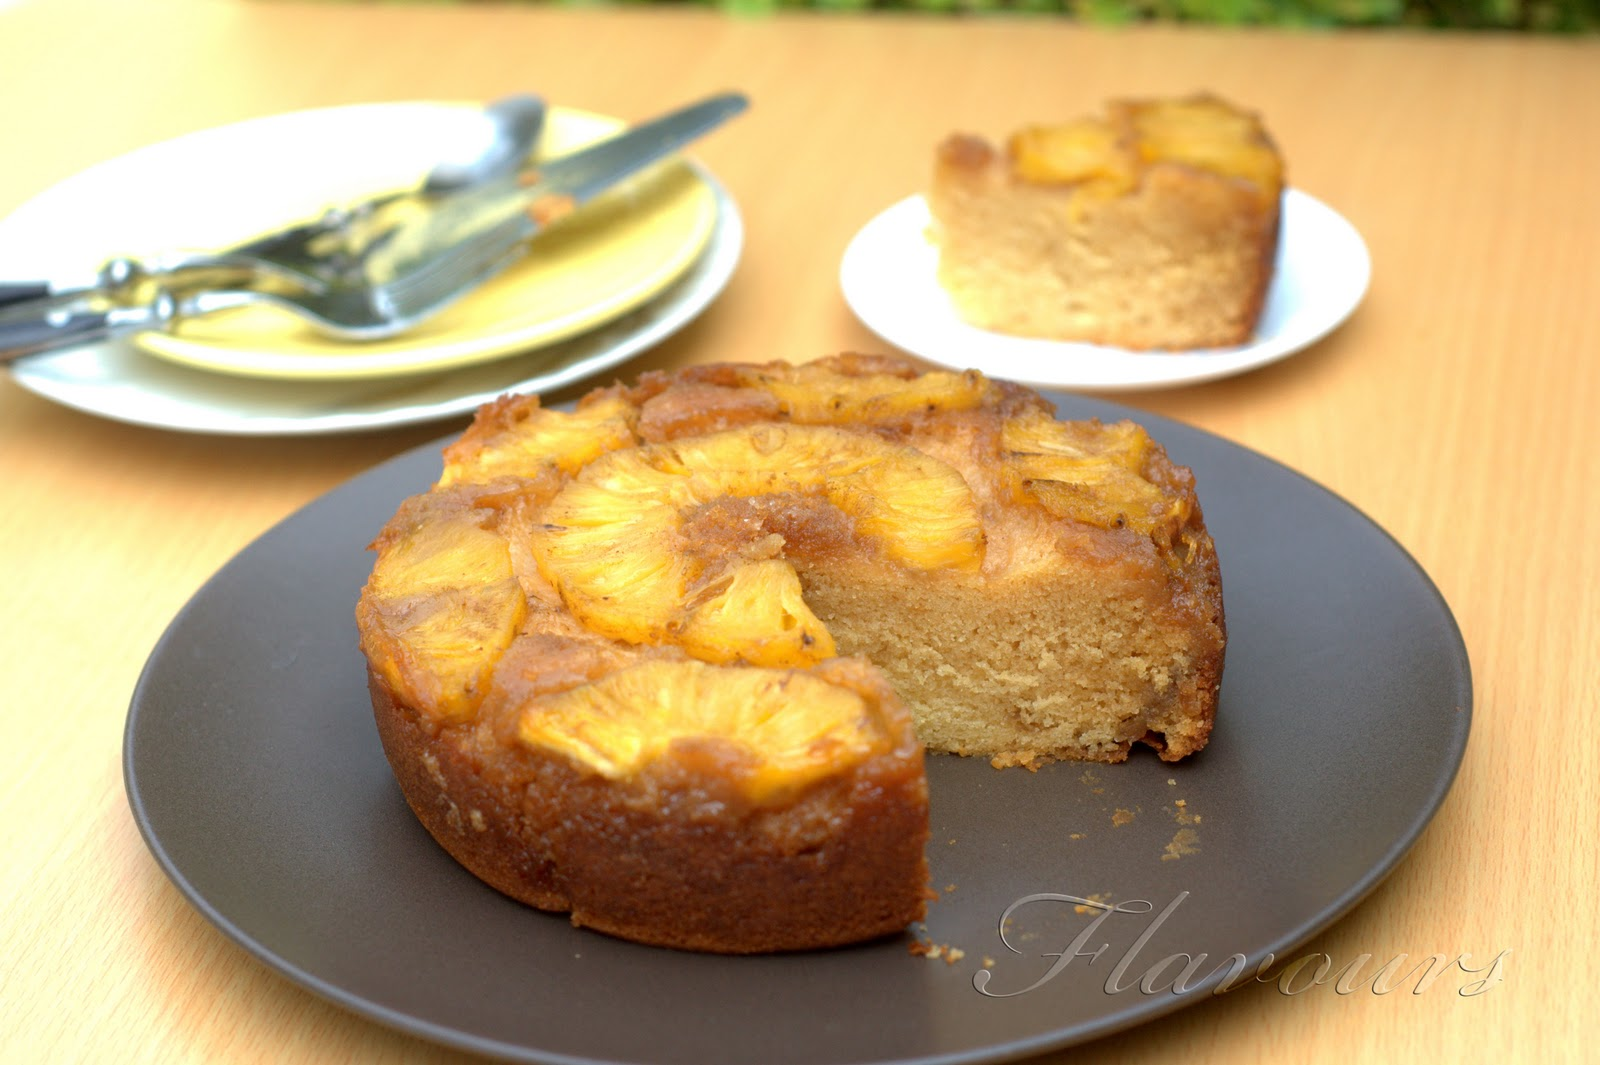 Eggless Pineapple Upside Down Cake With Condensed Milk